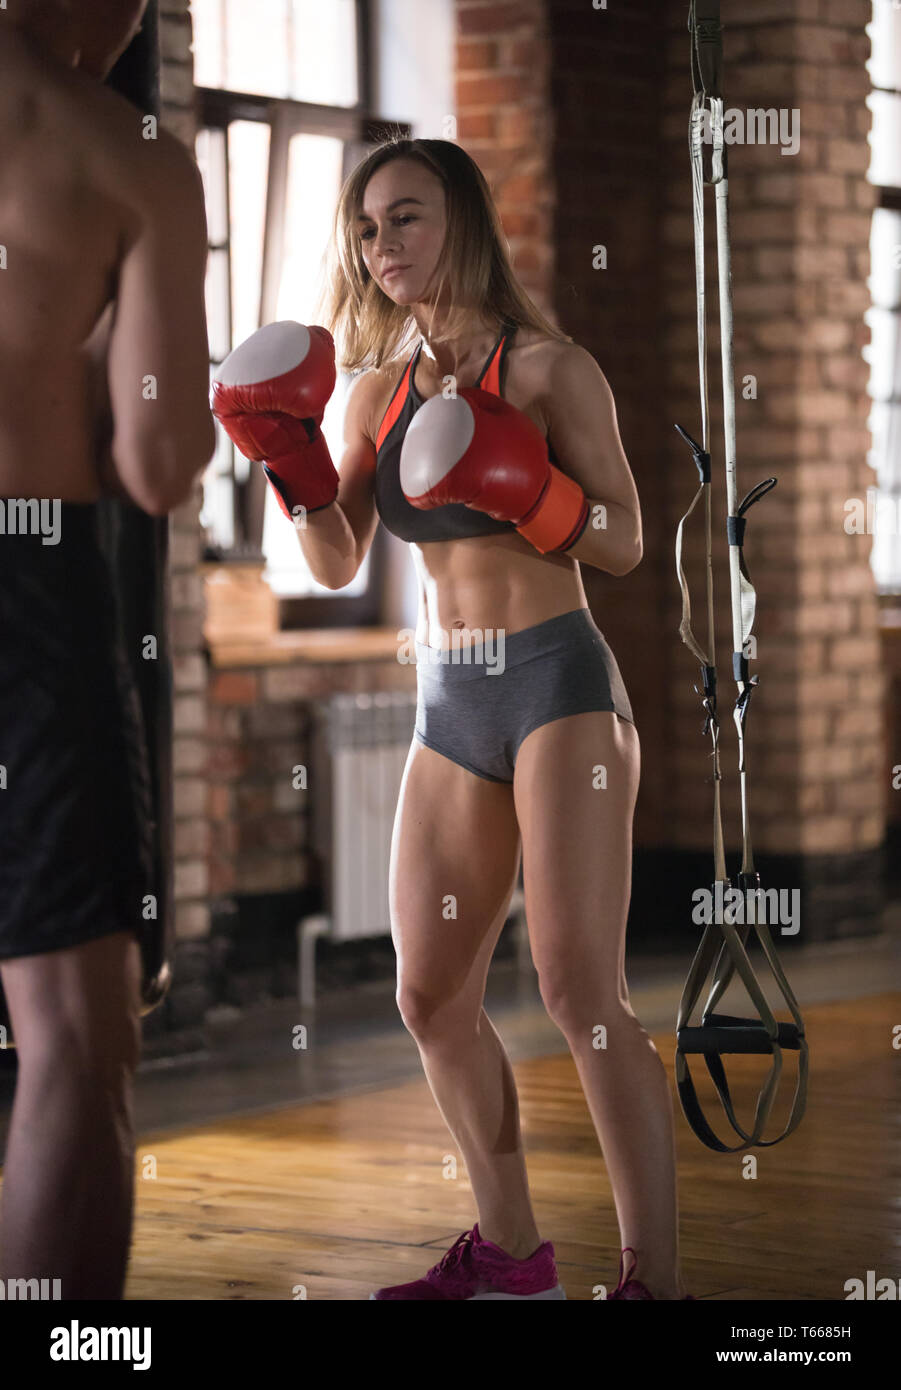 Man and woman in the gym. Trainer holding a punching bag and woman hitting it - Stock Image